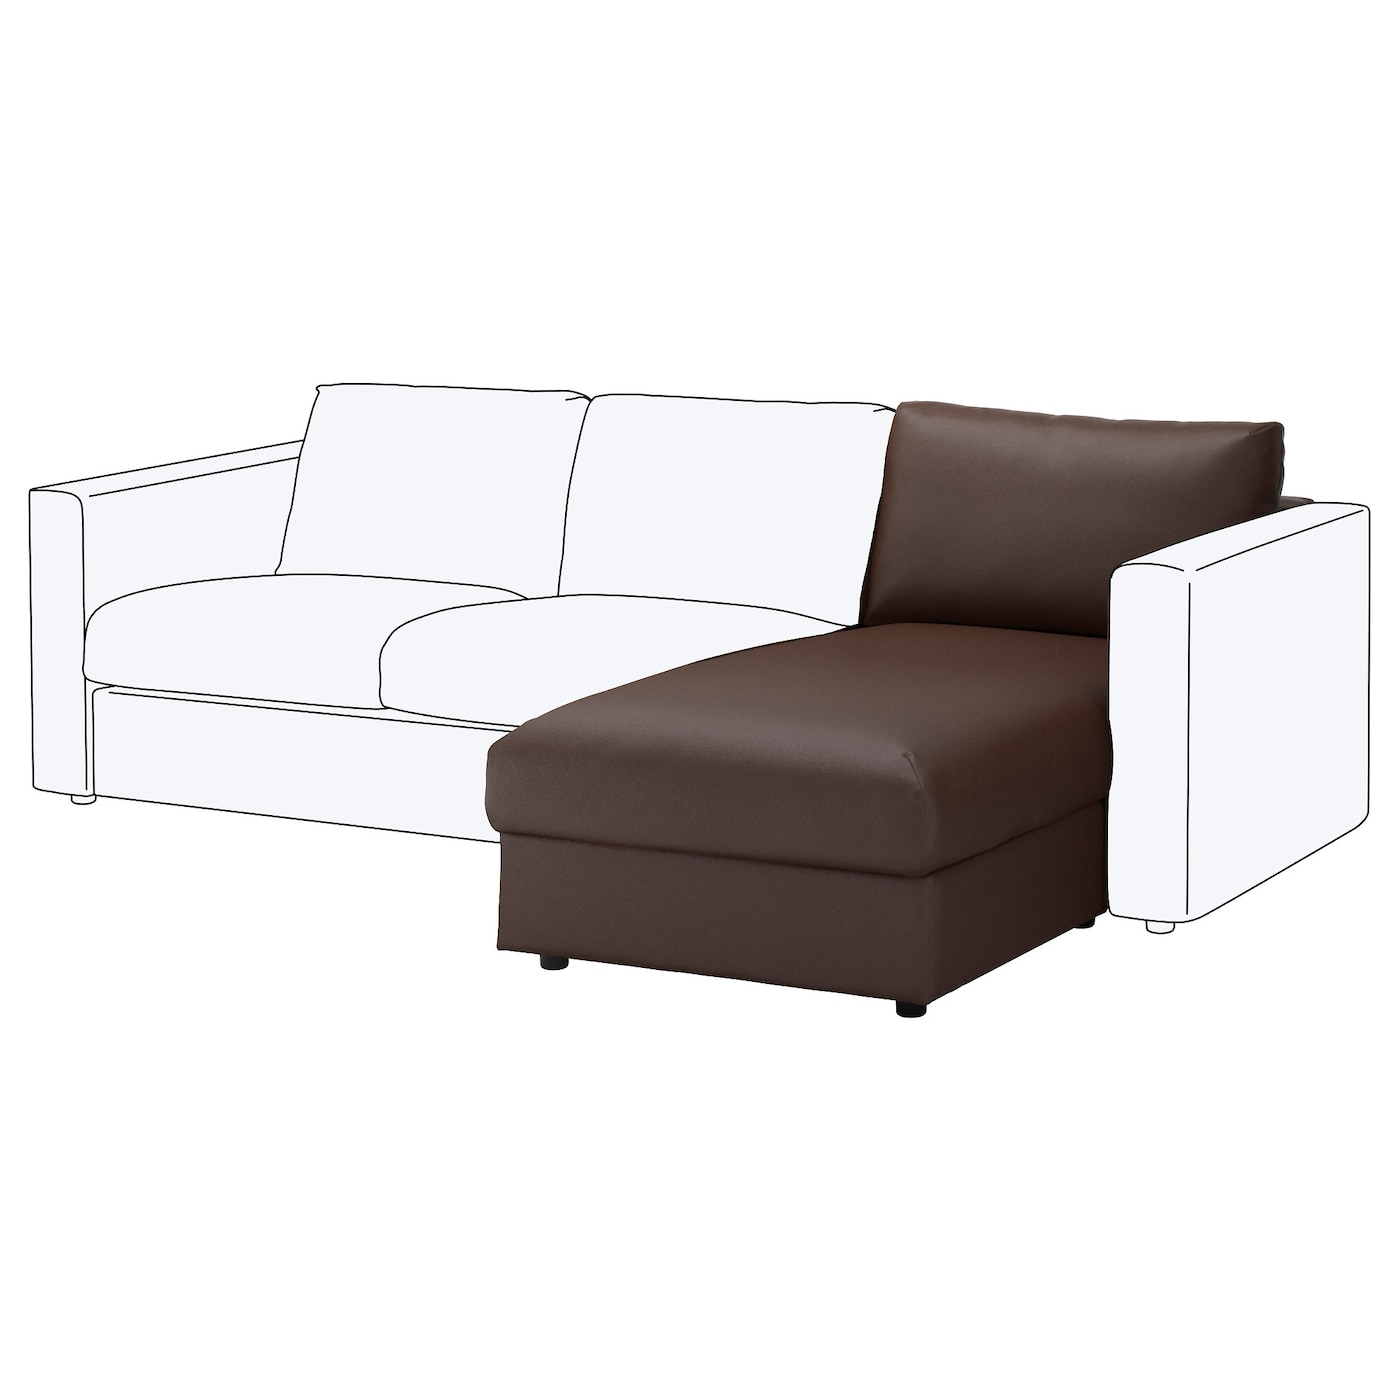 Ikea chaise lounge sofa kivik chaise longue grann bomstad for Sofas con chaise longue